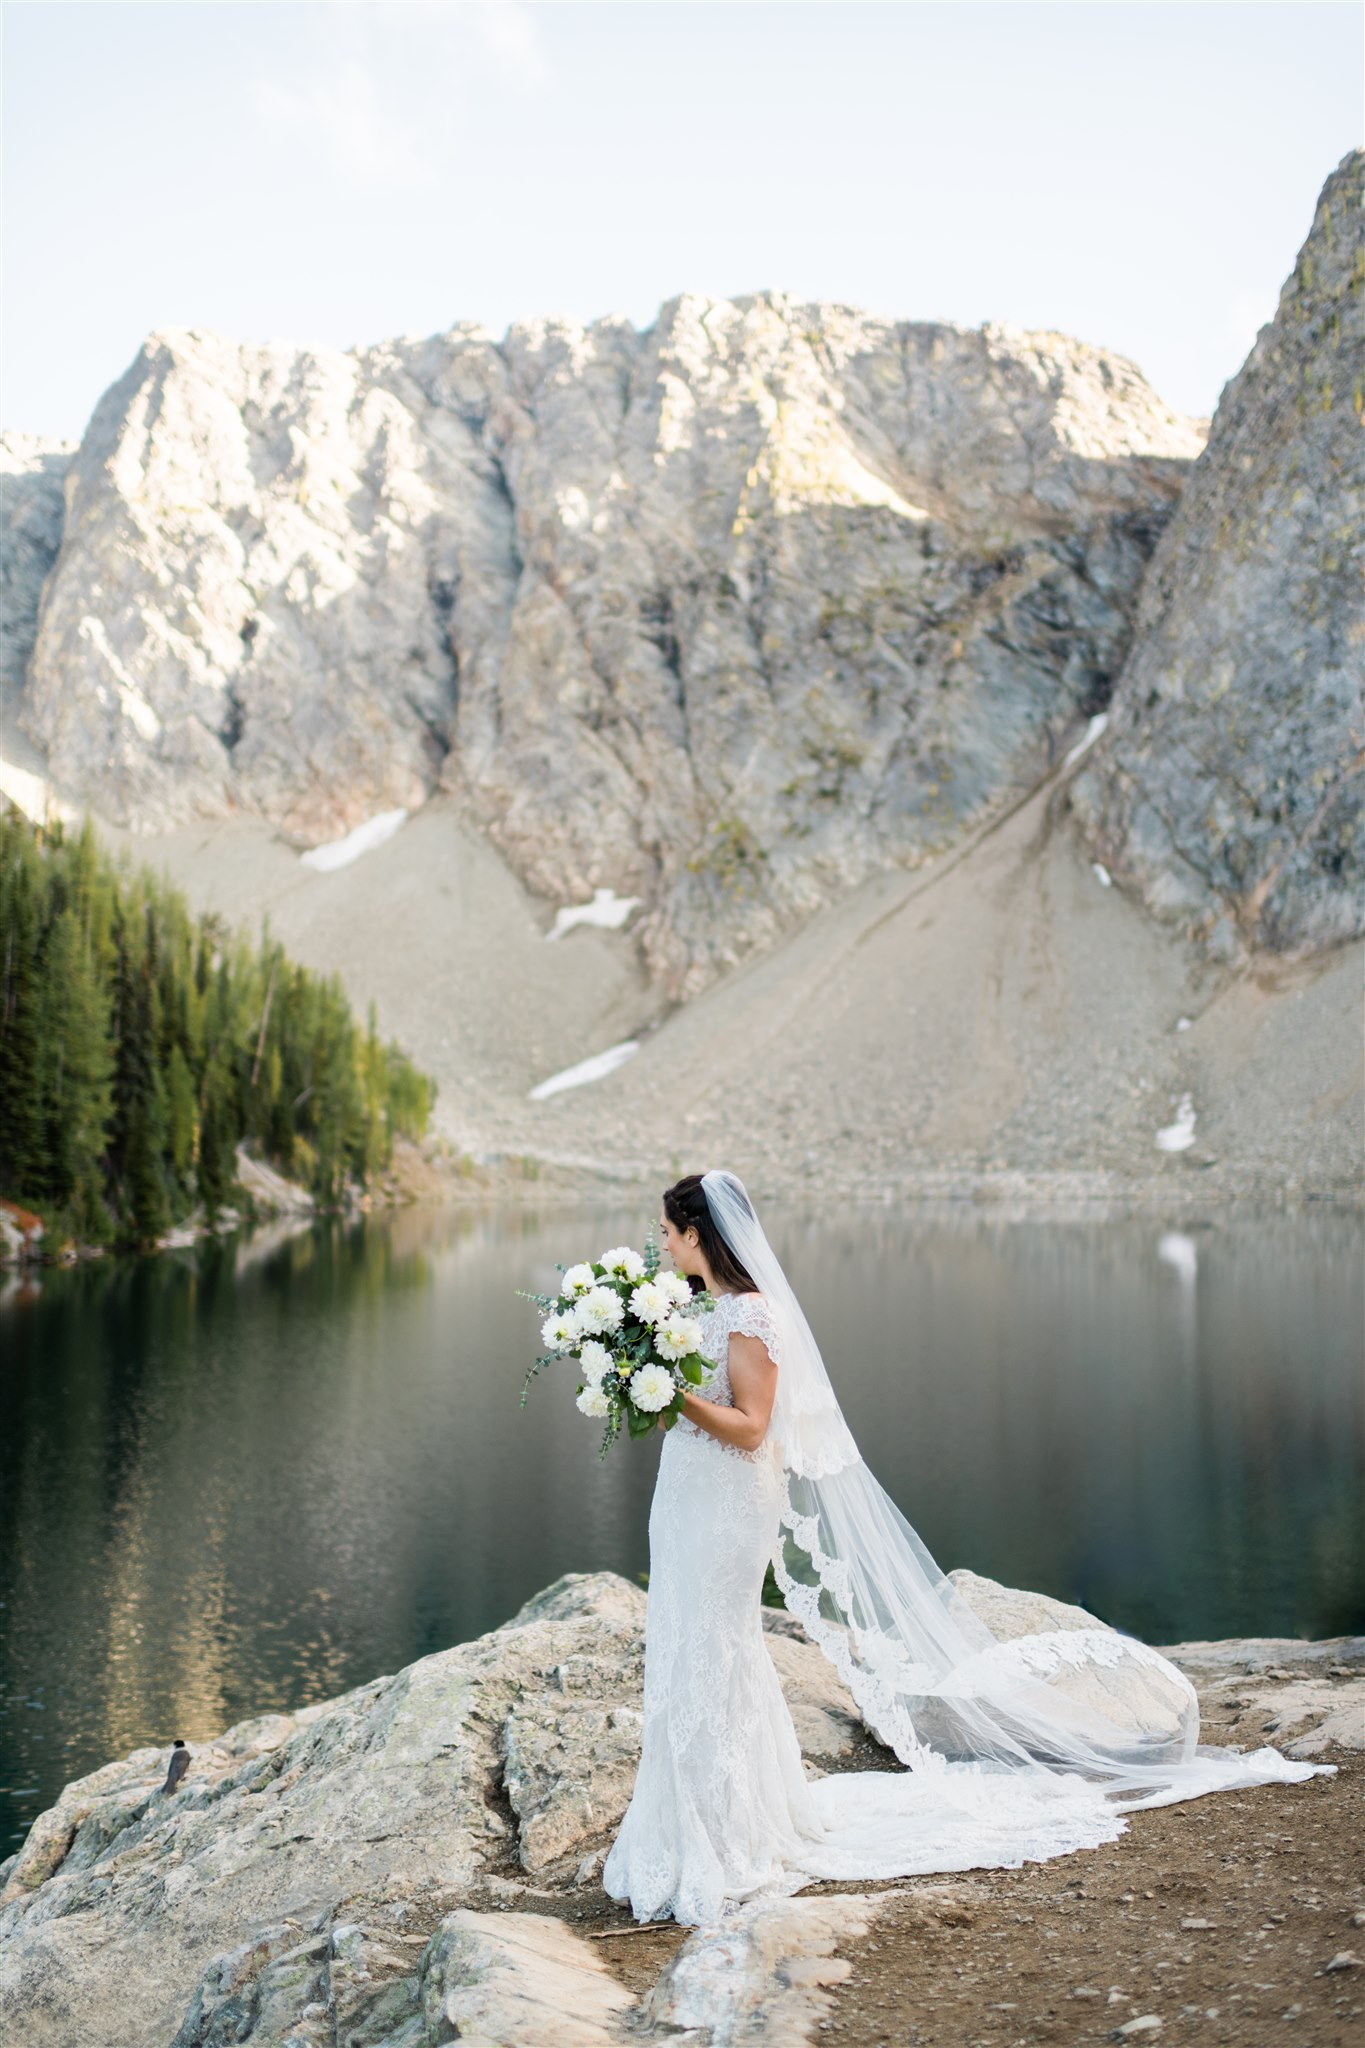 North Cascades adventure wedding, hiking bride. Image by Forthright Photo.